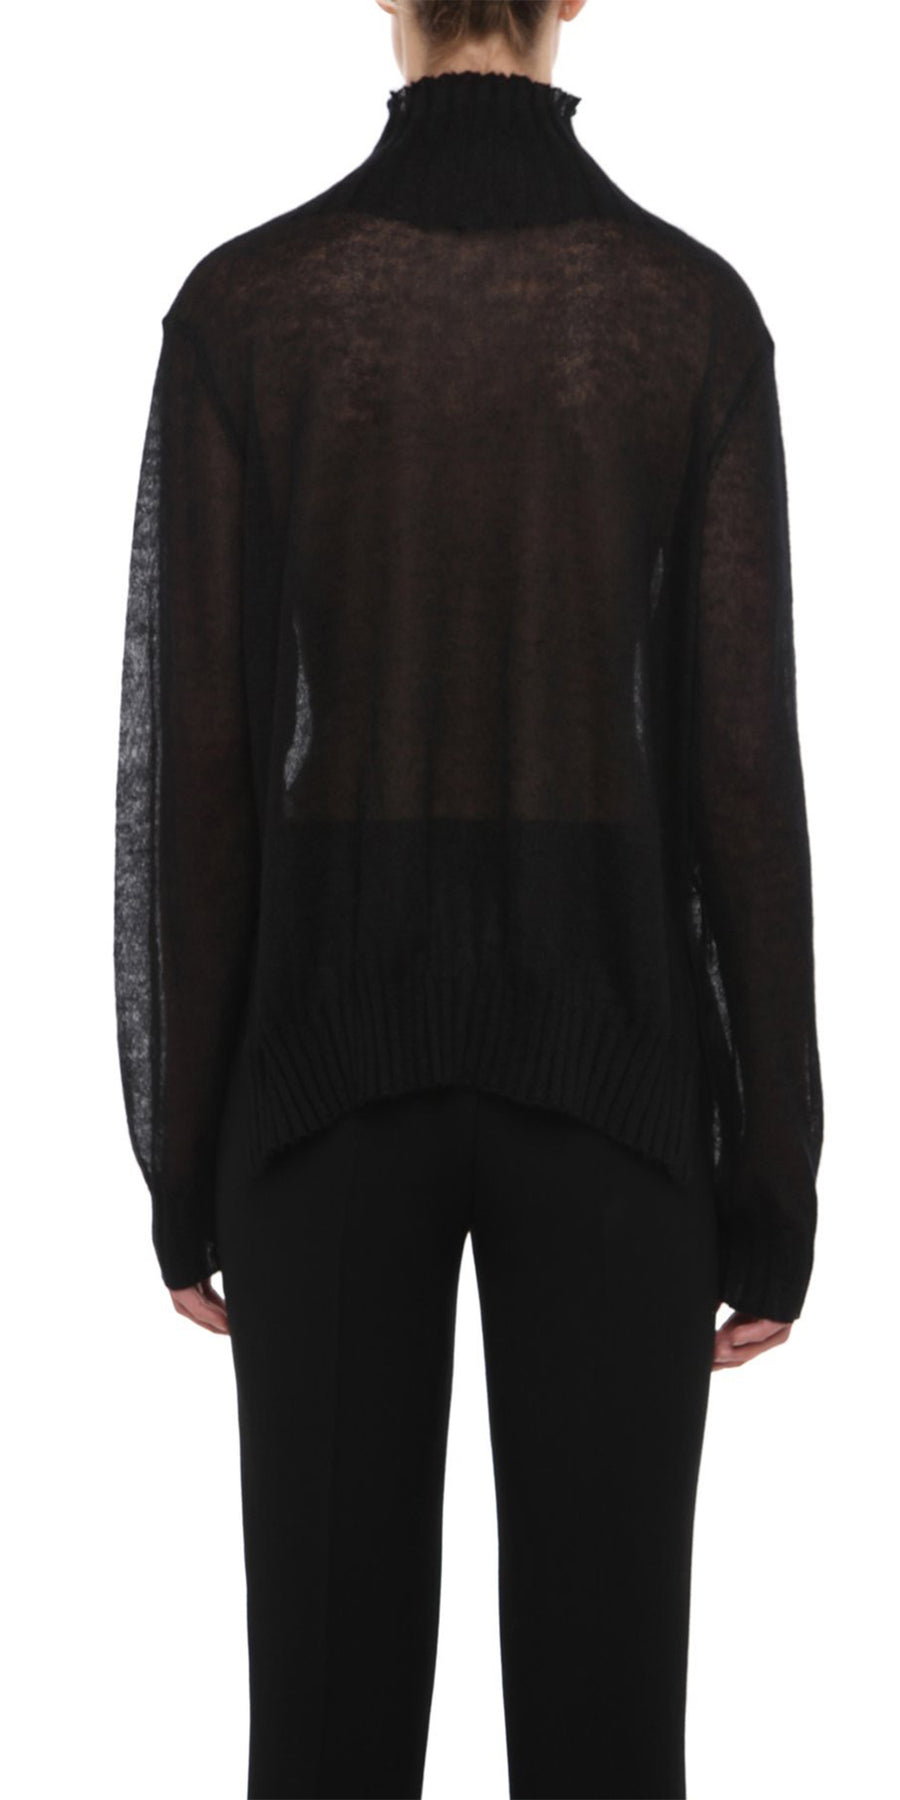 HIRASE BLACK FUNNEL NECK JUMPER